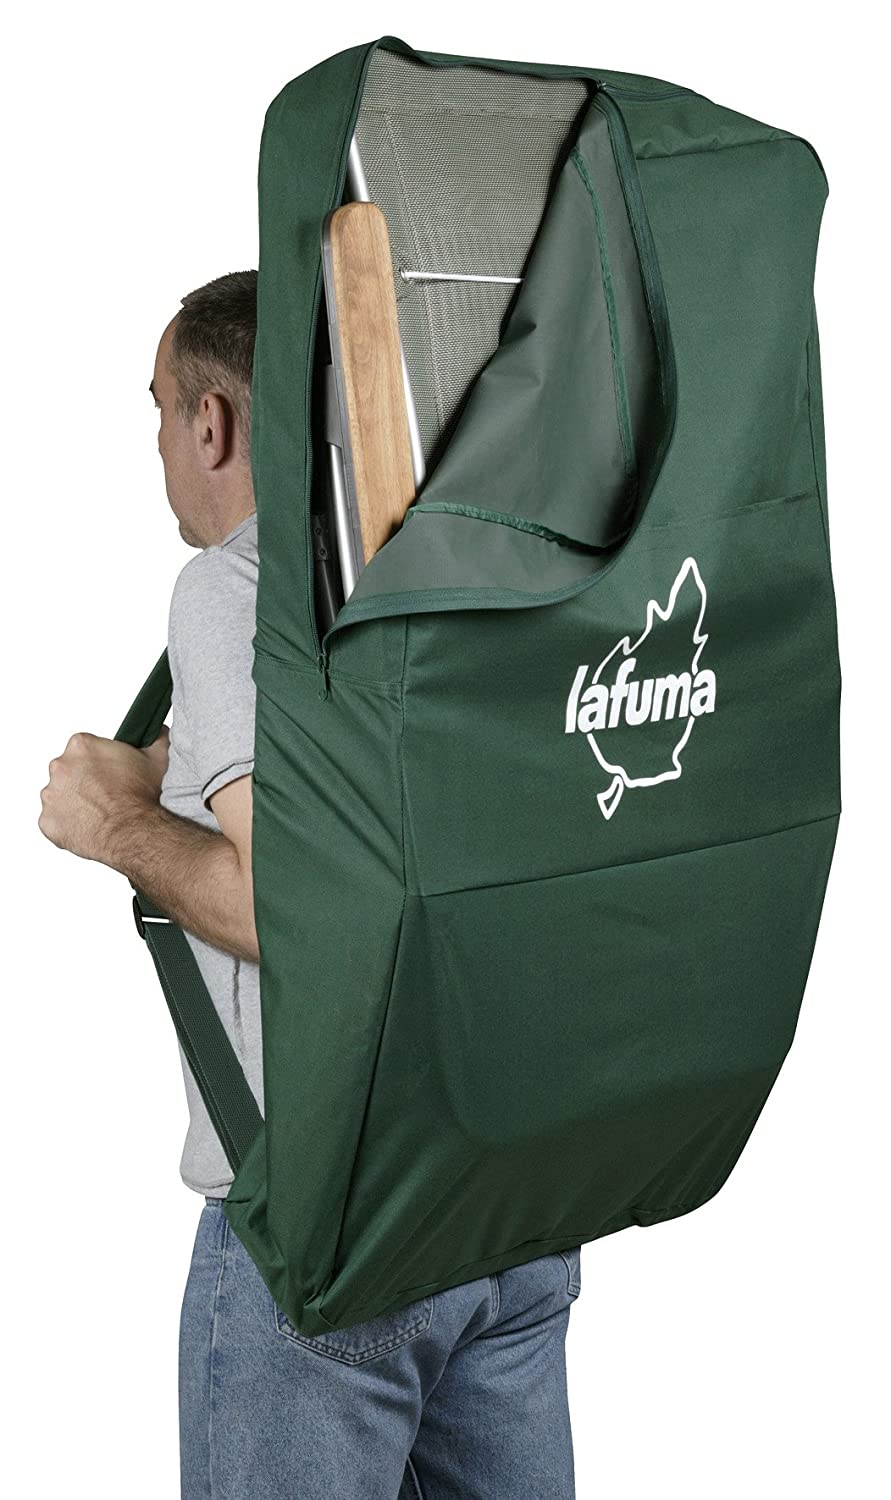 lafuma-lfm2106-0577-recliner-backpack-outdoor-green